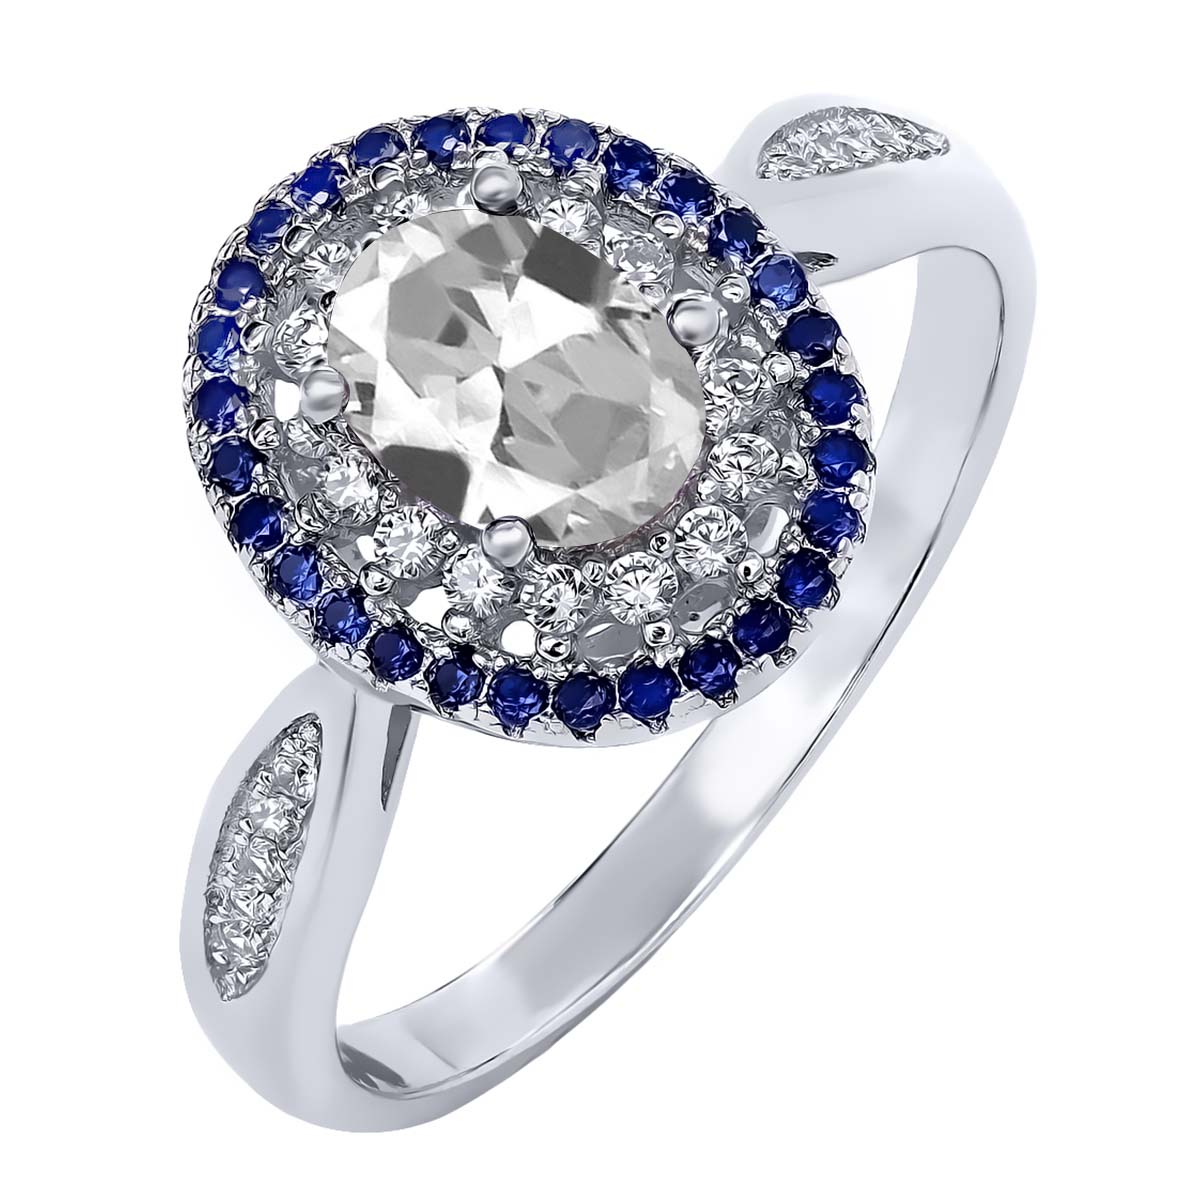 1.55 Ct Oval White Topaz 925 Sterling Silver Ring